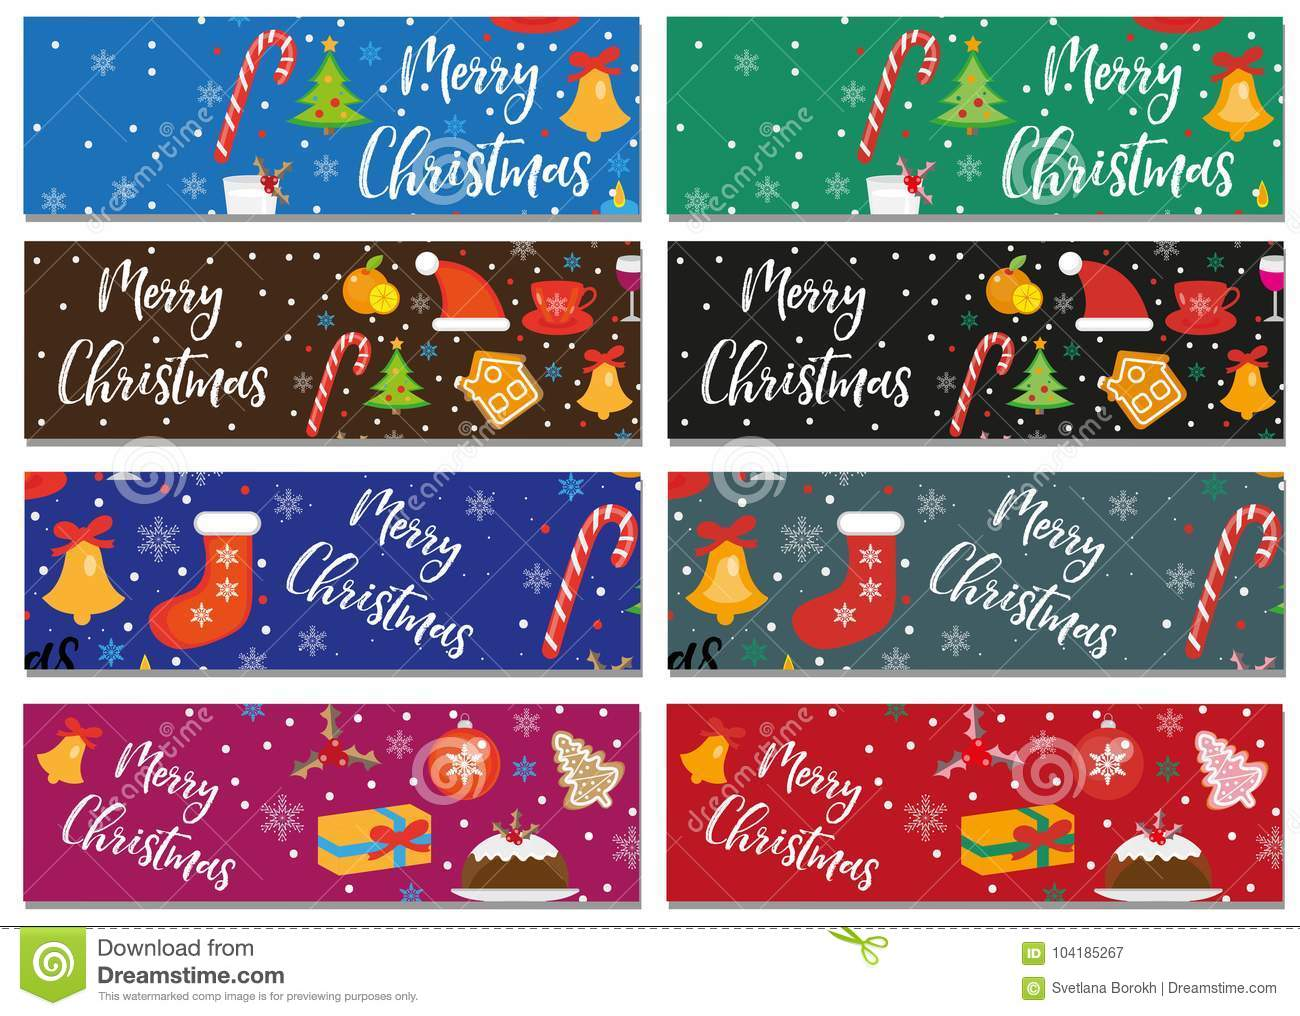 Christmas Board Design.Merry Christmas Set Of Banners Template With Space For Text